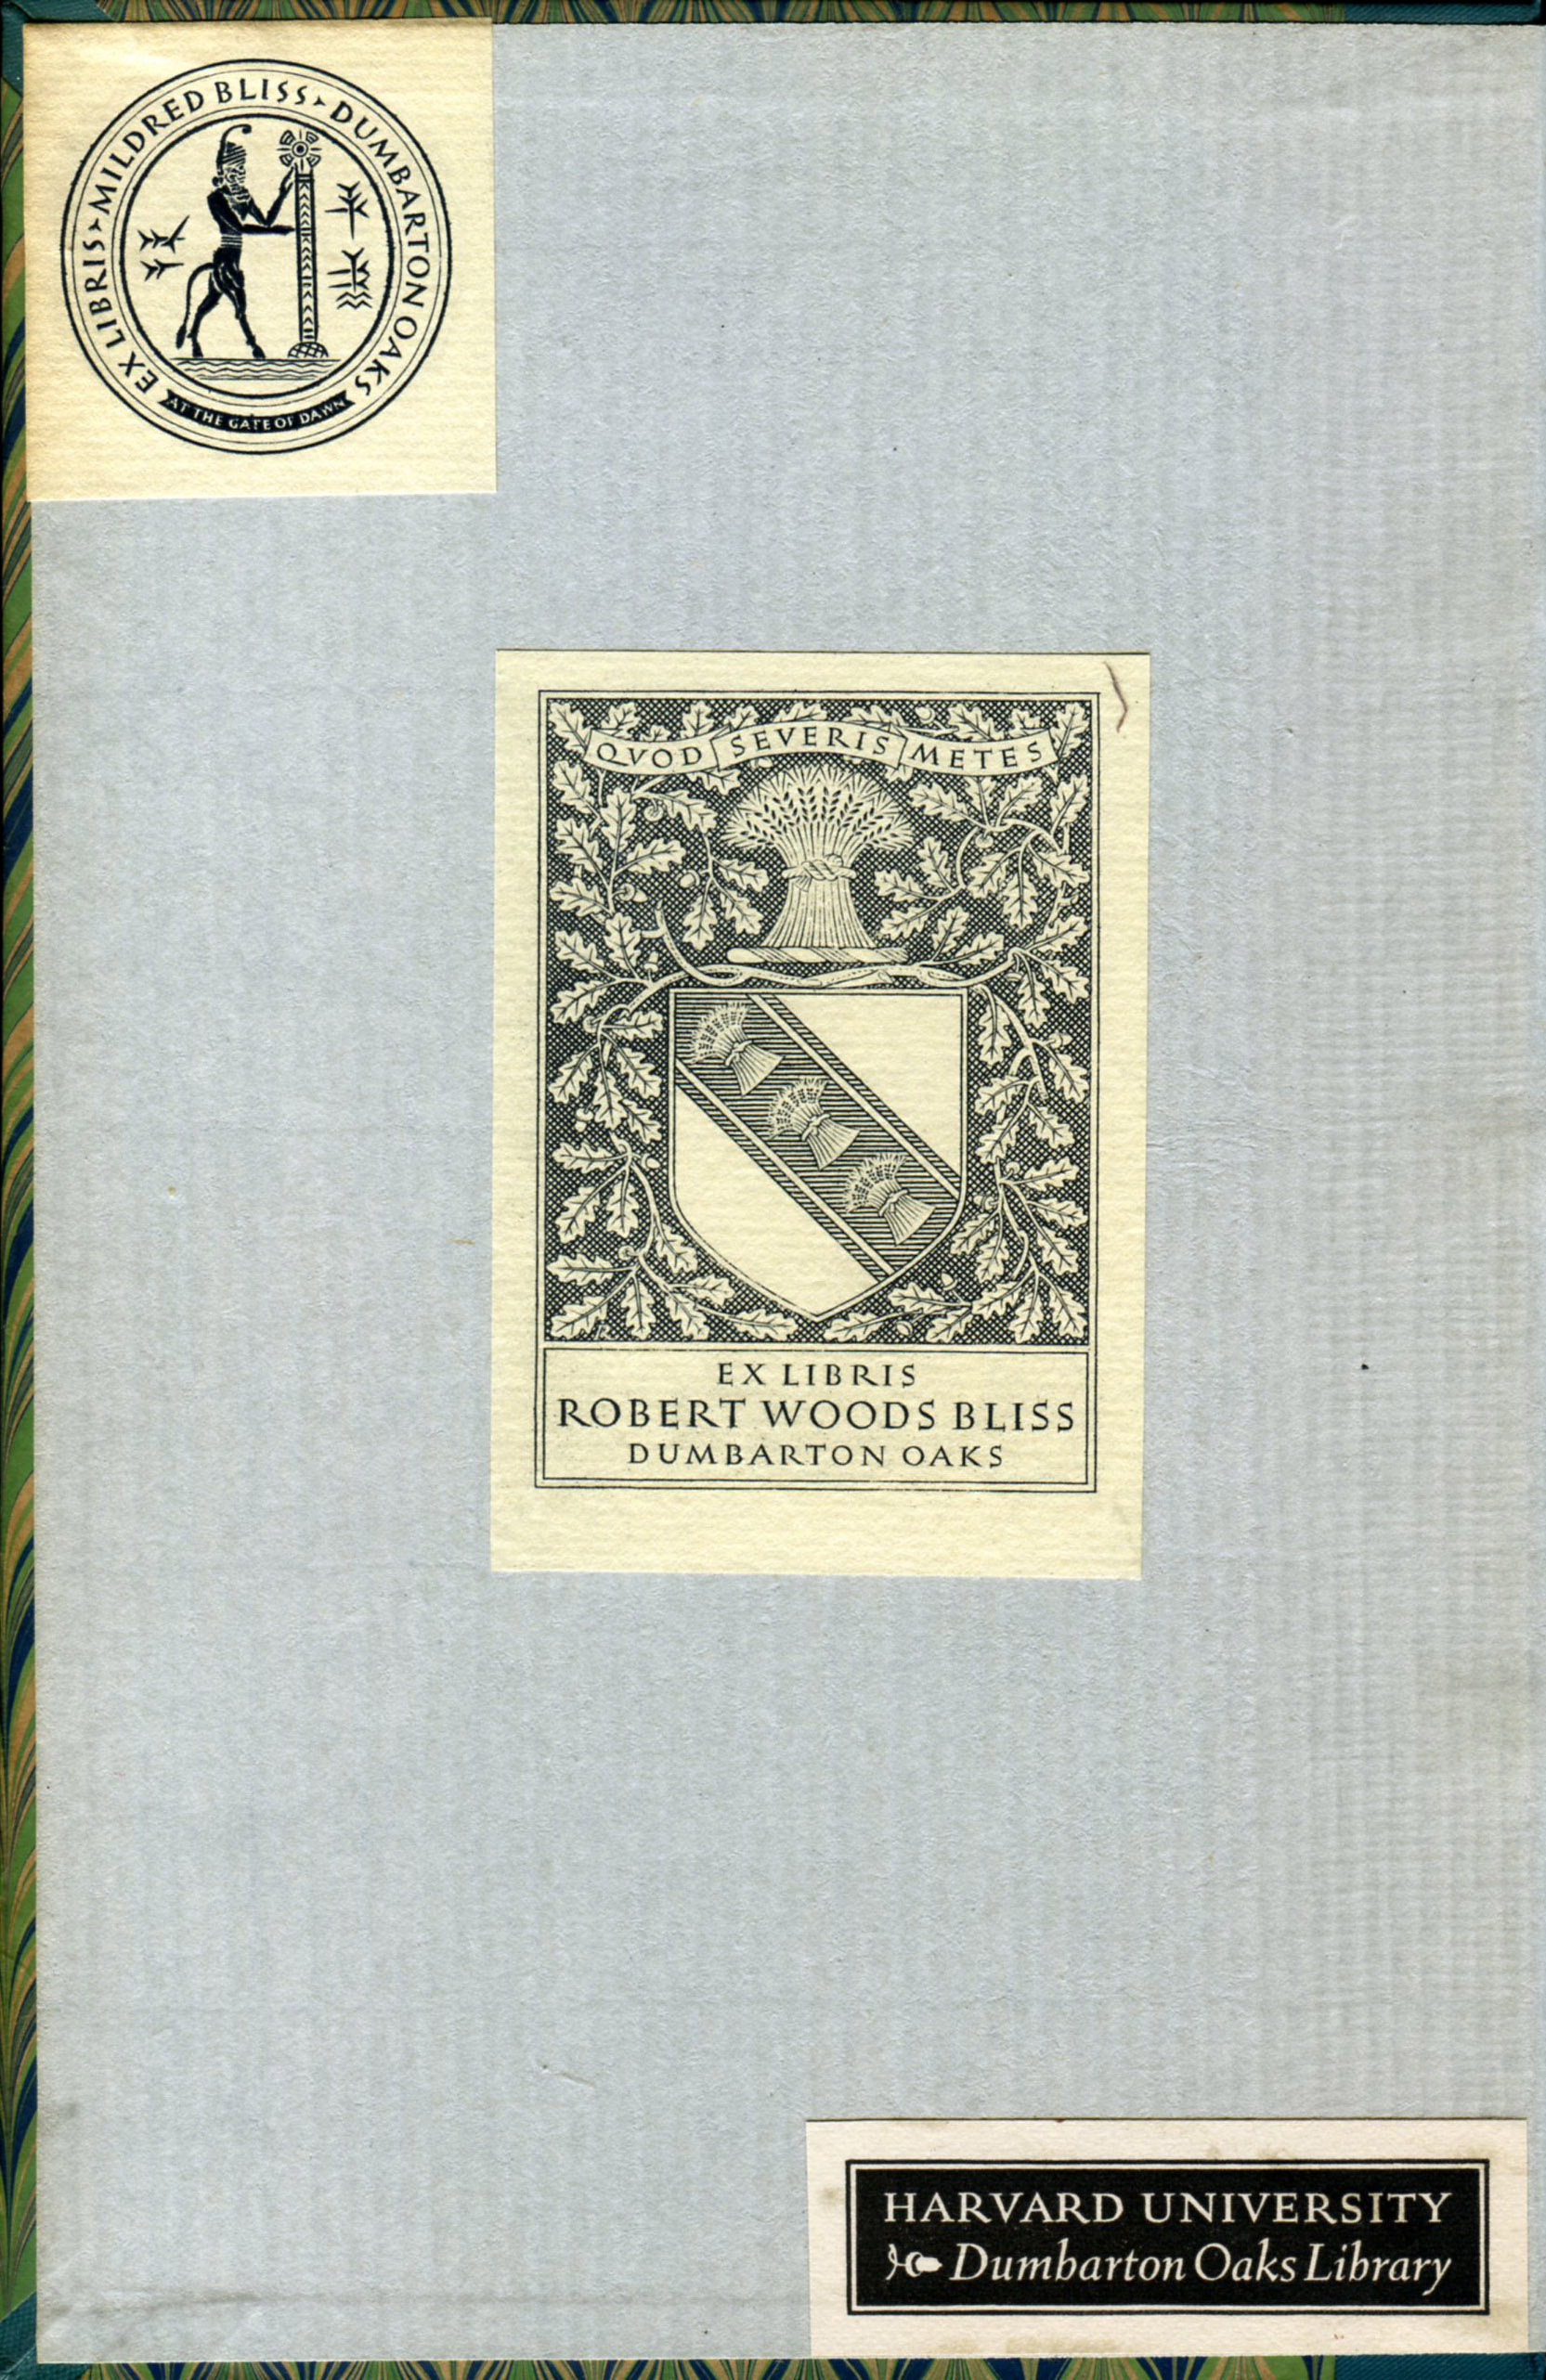 Book endpaper with the bookplates of Mildred Bliss, Robert Woods Bliss, and Harvard University – Dumbarton Oaks Library.